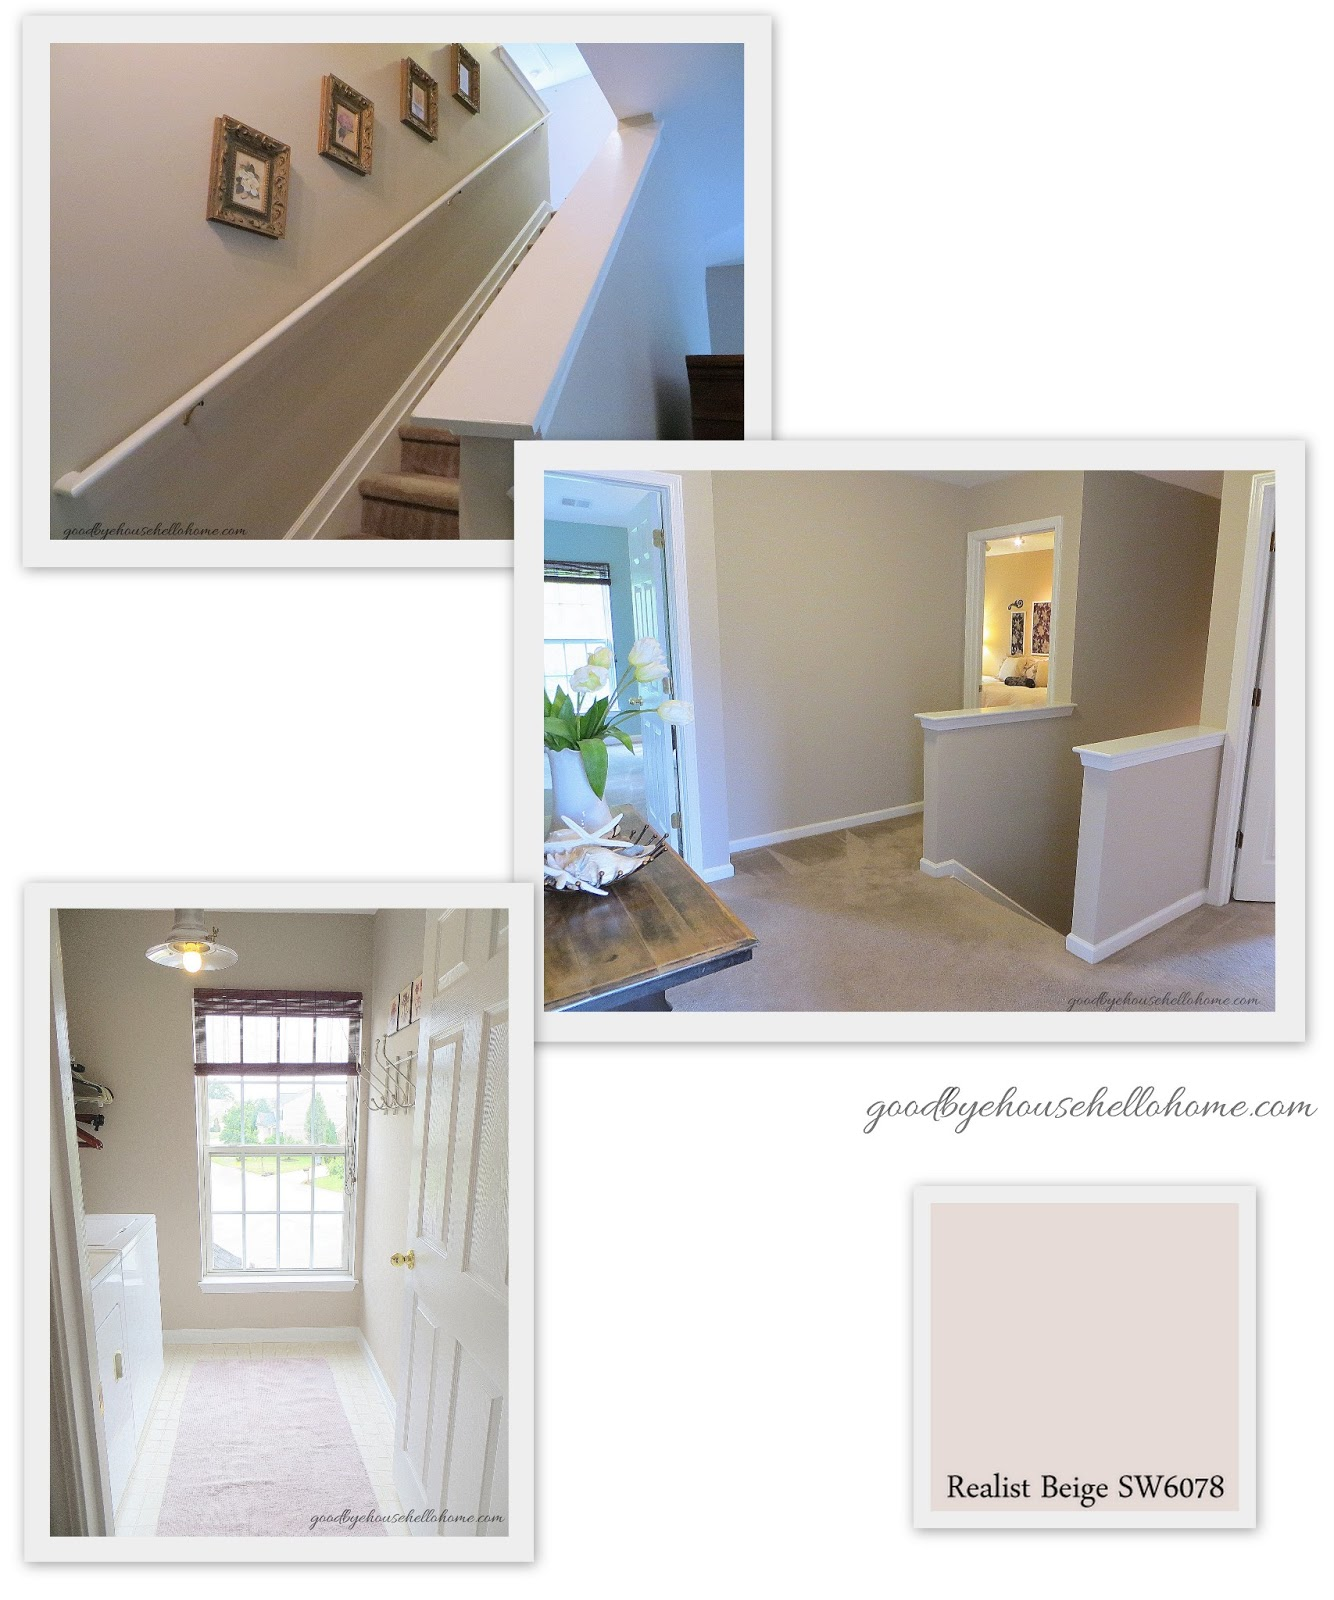 What Color Do I Paint My House: Goodbye, House. Hello, Home! Blog : My Own Staged Home